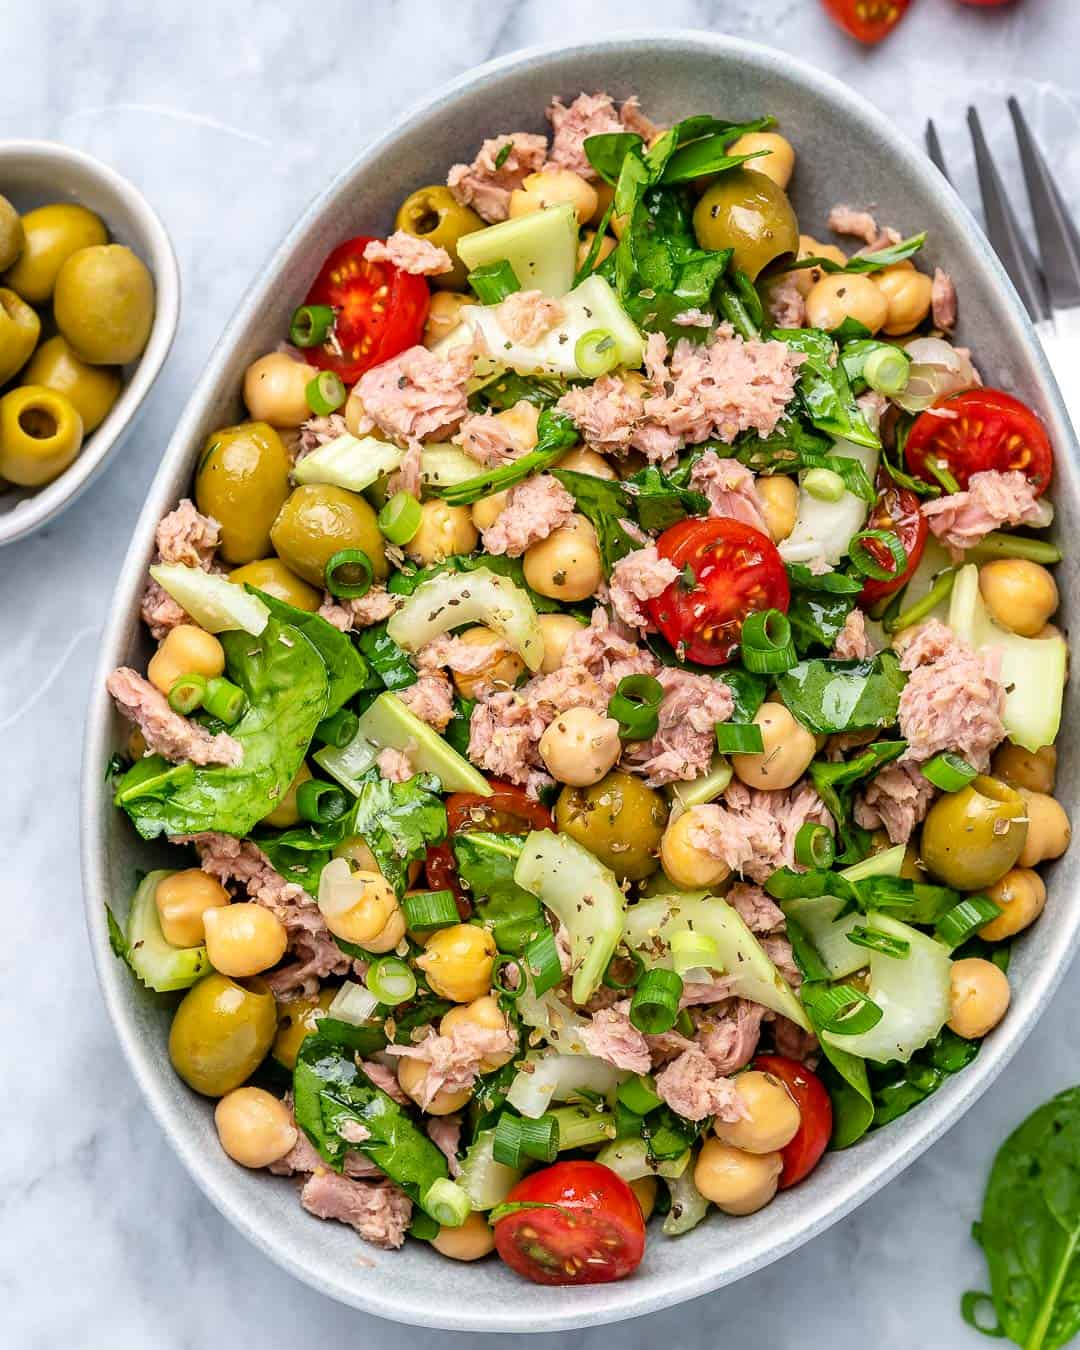 easy Chickpea tuna salad